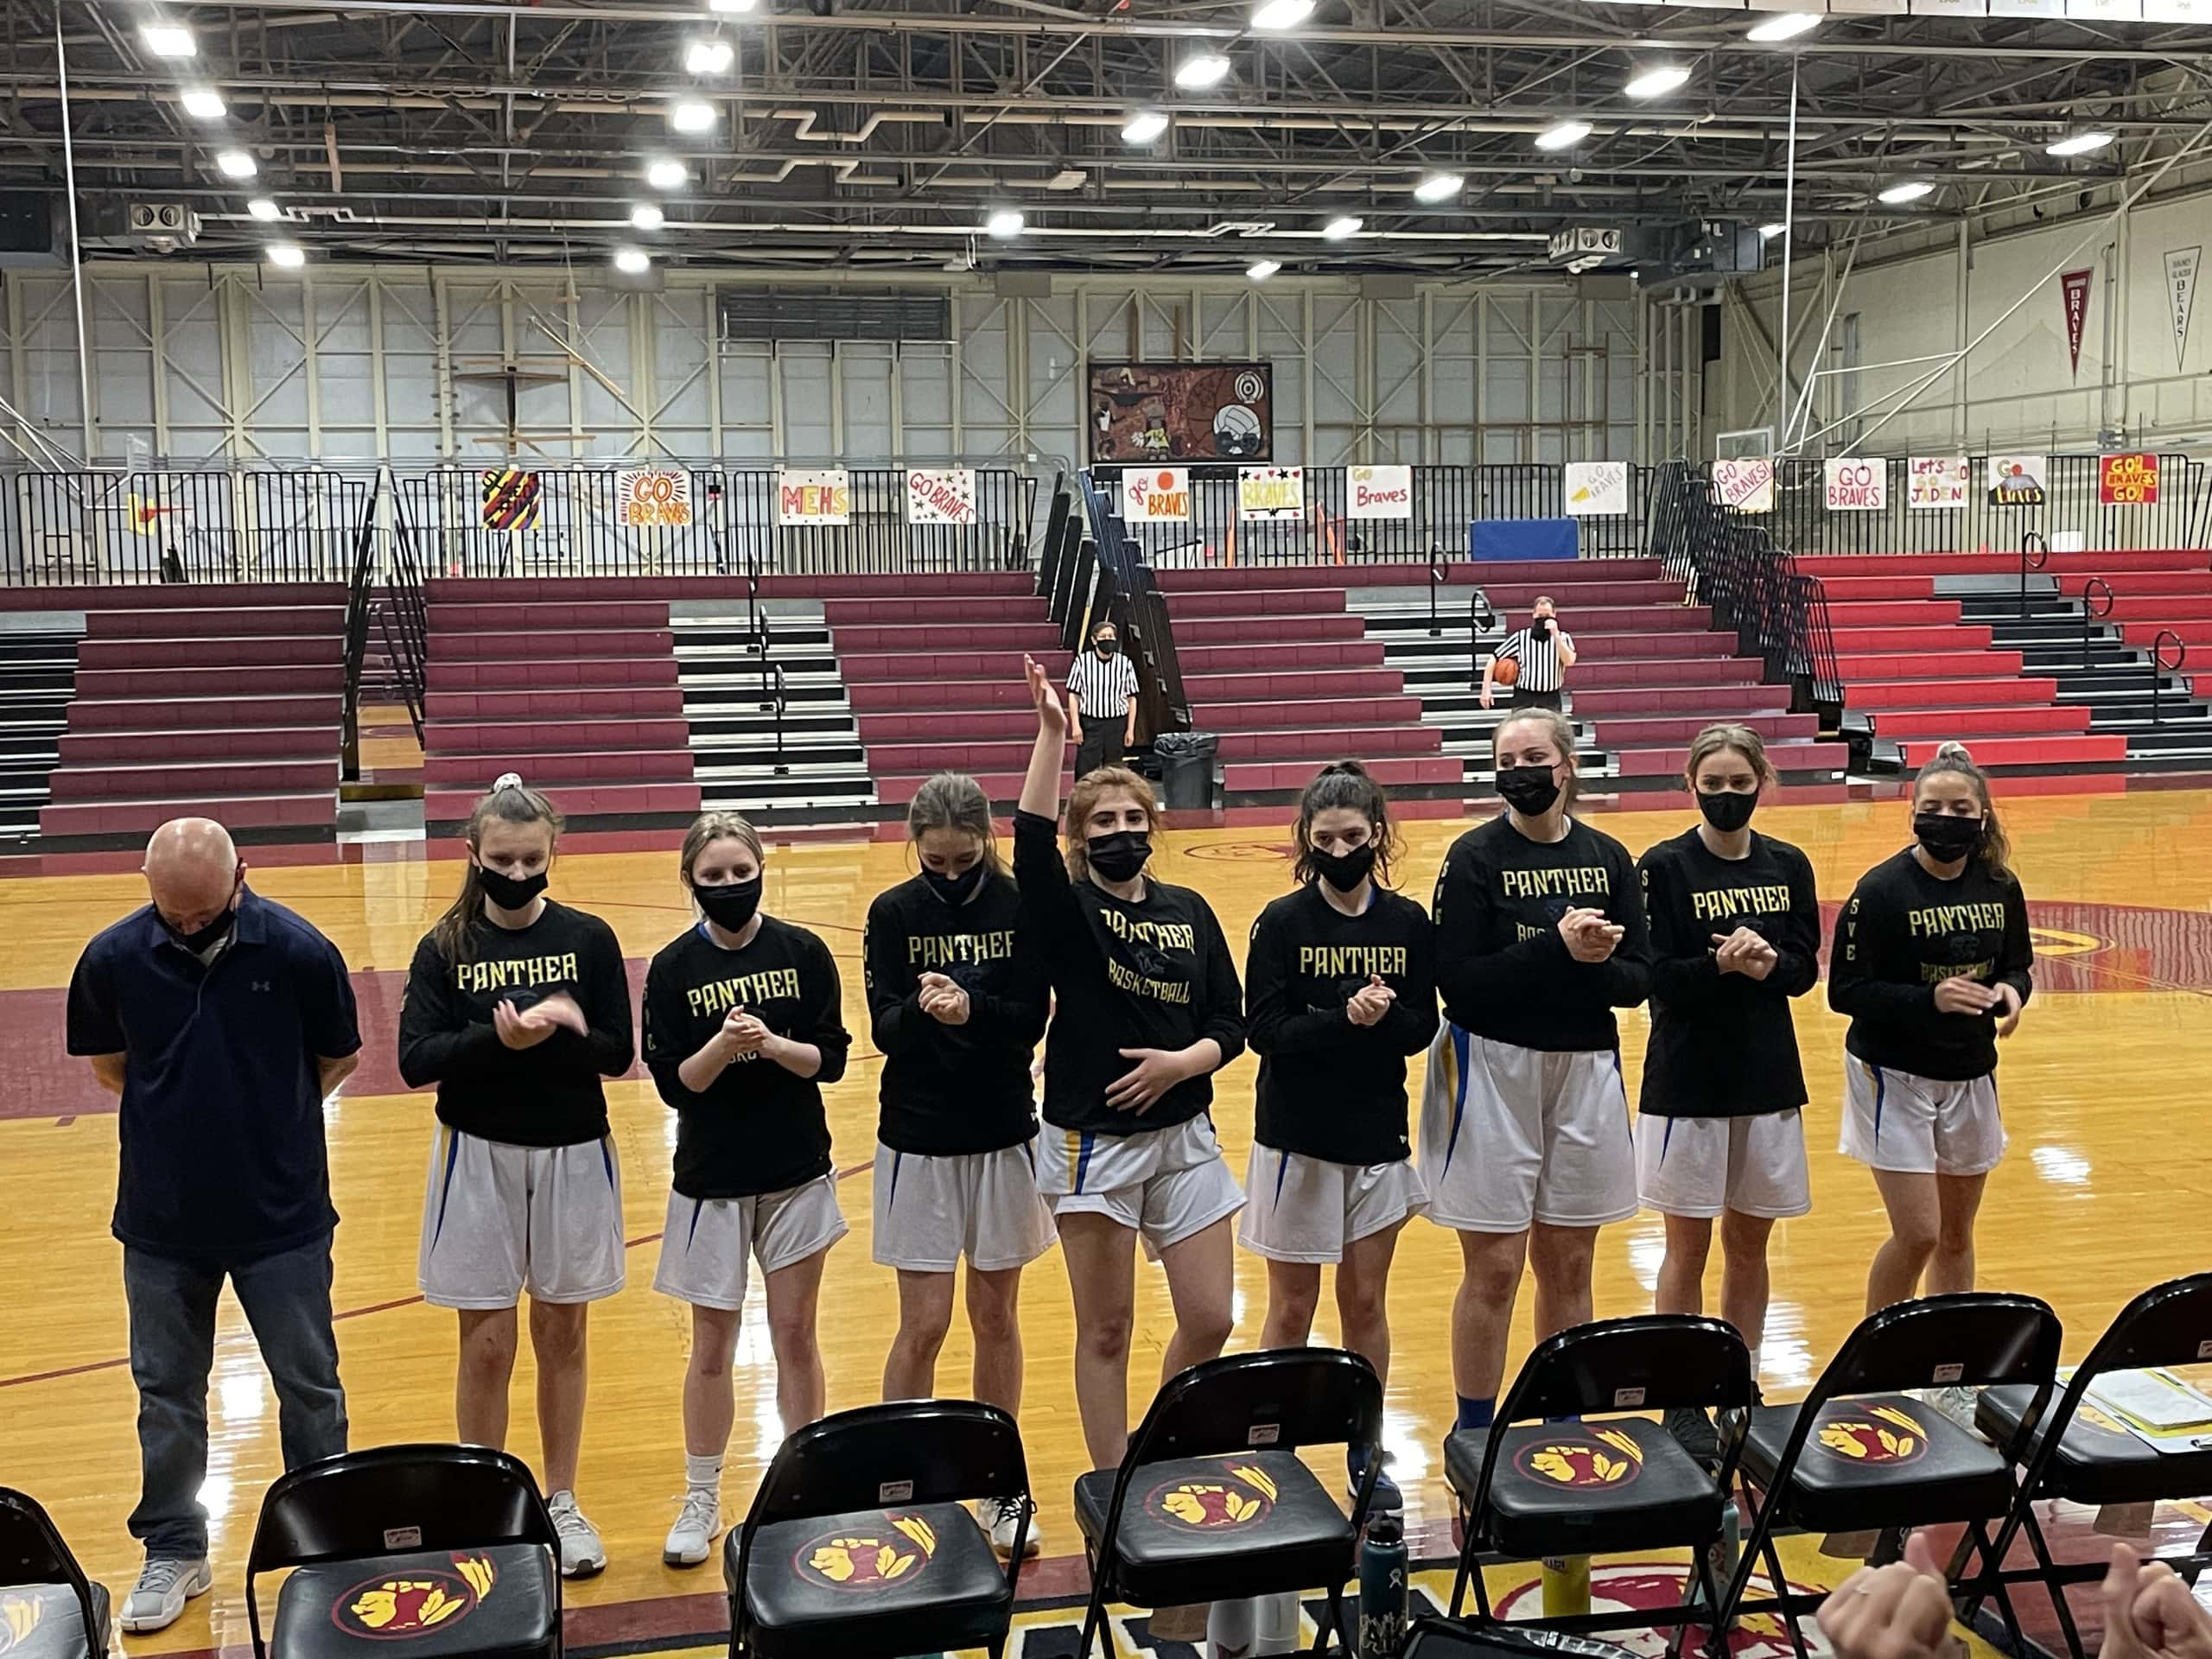 Panthers basketball takes second at Sitka mini-regionals